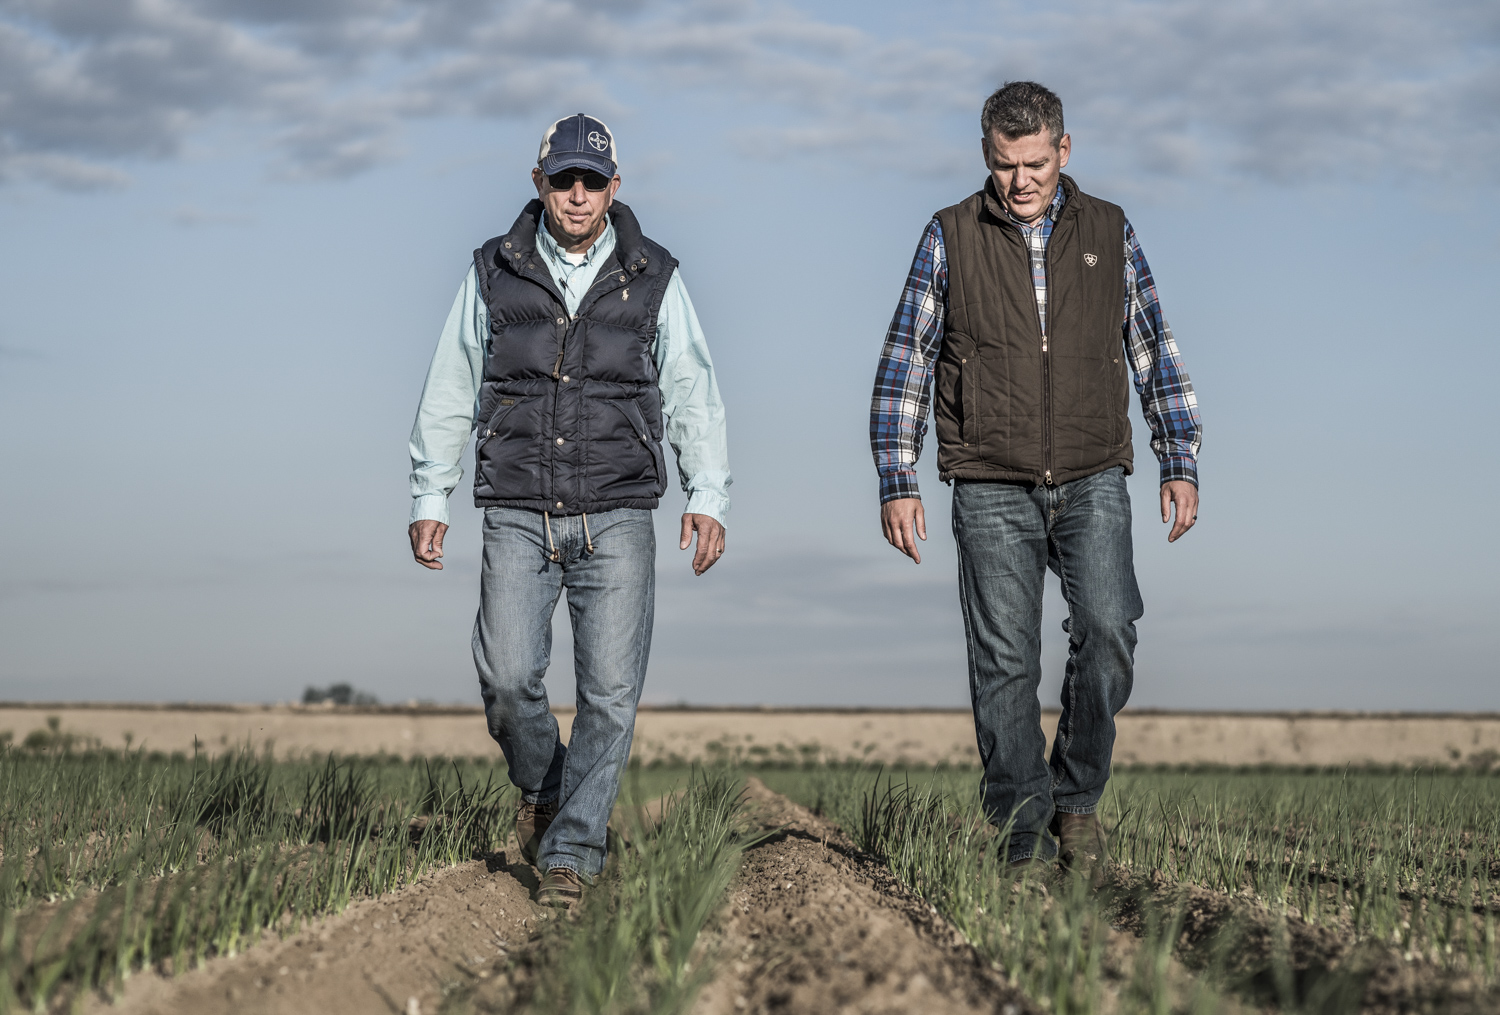 Farmers walking in field